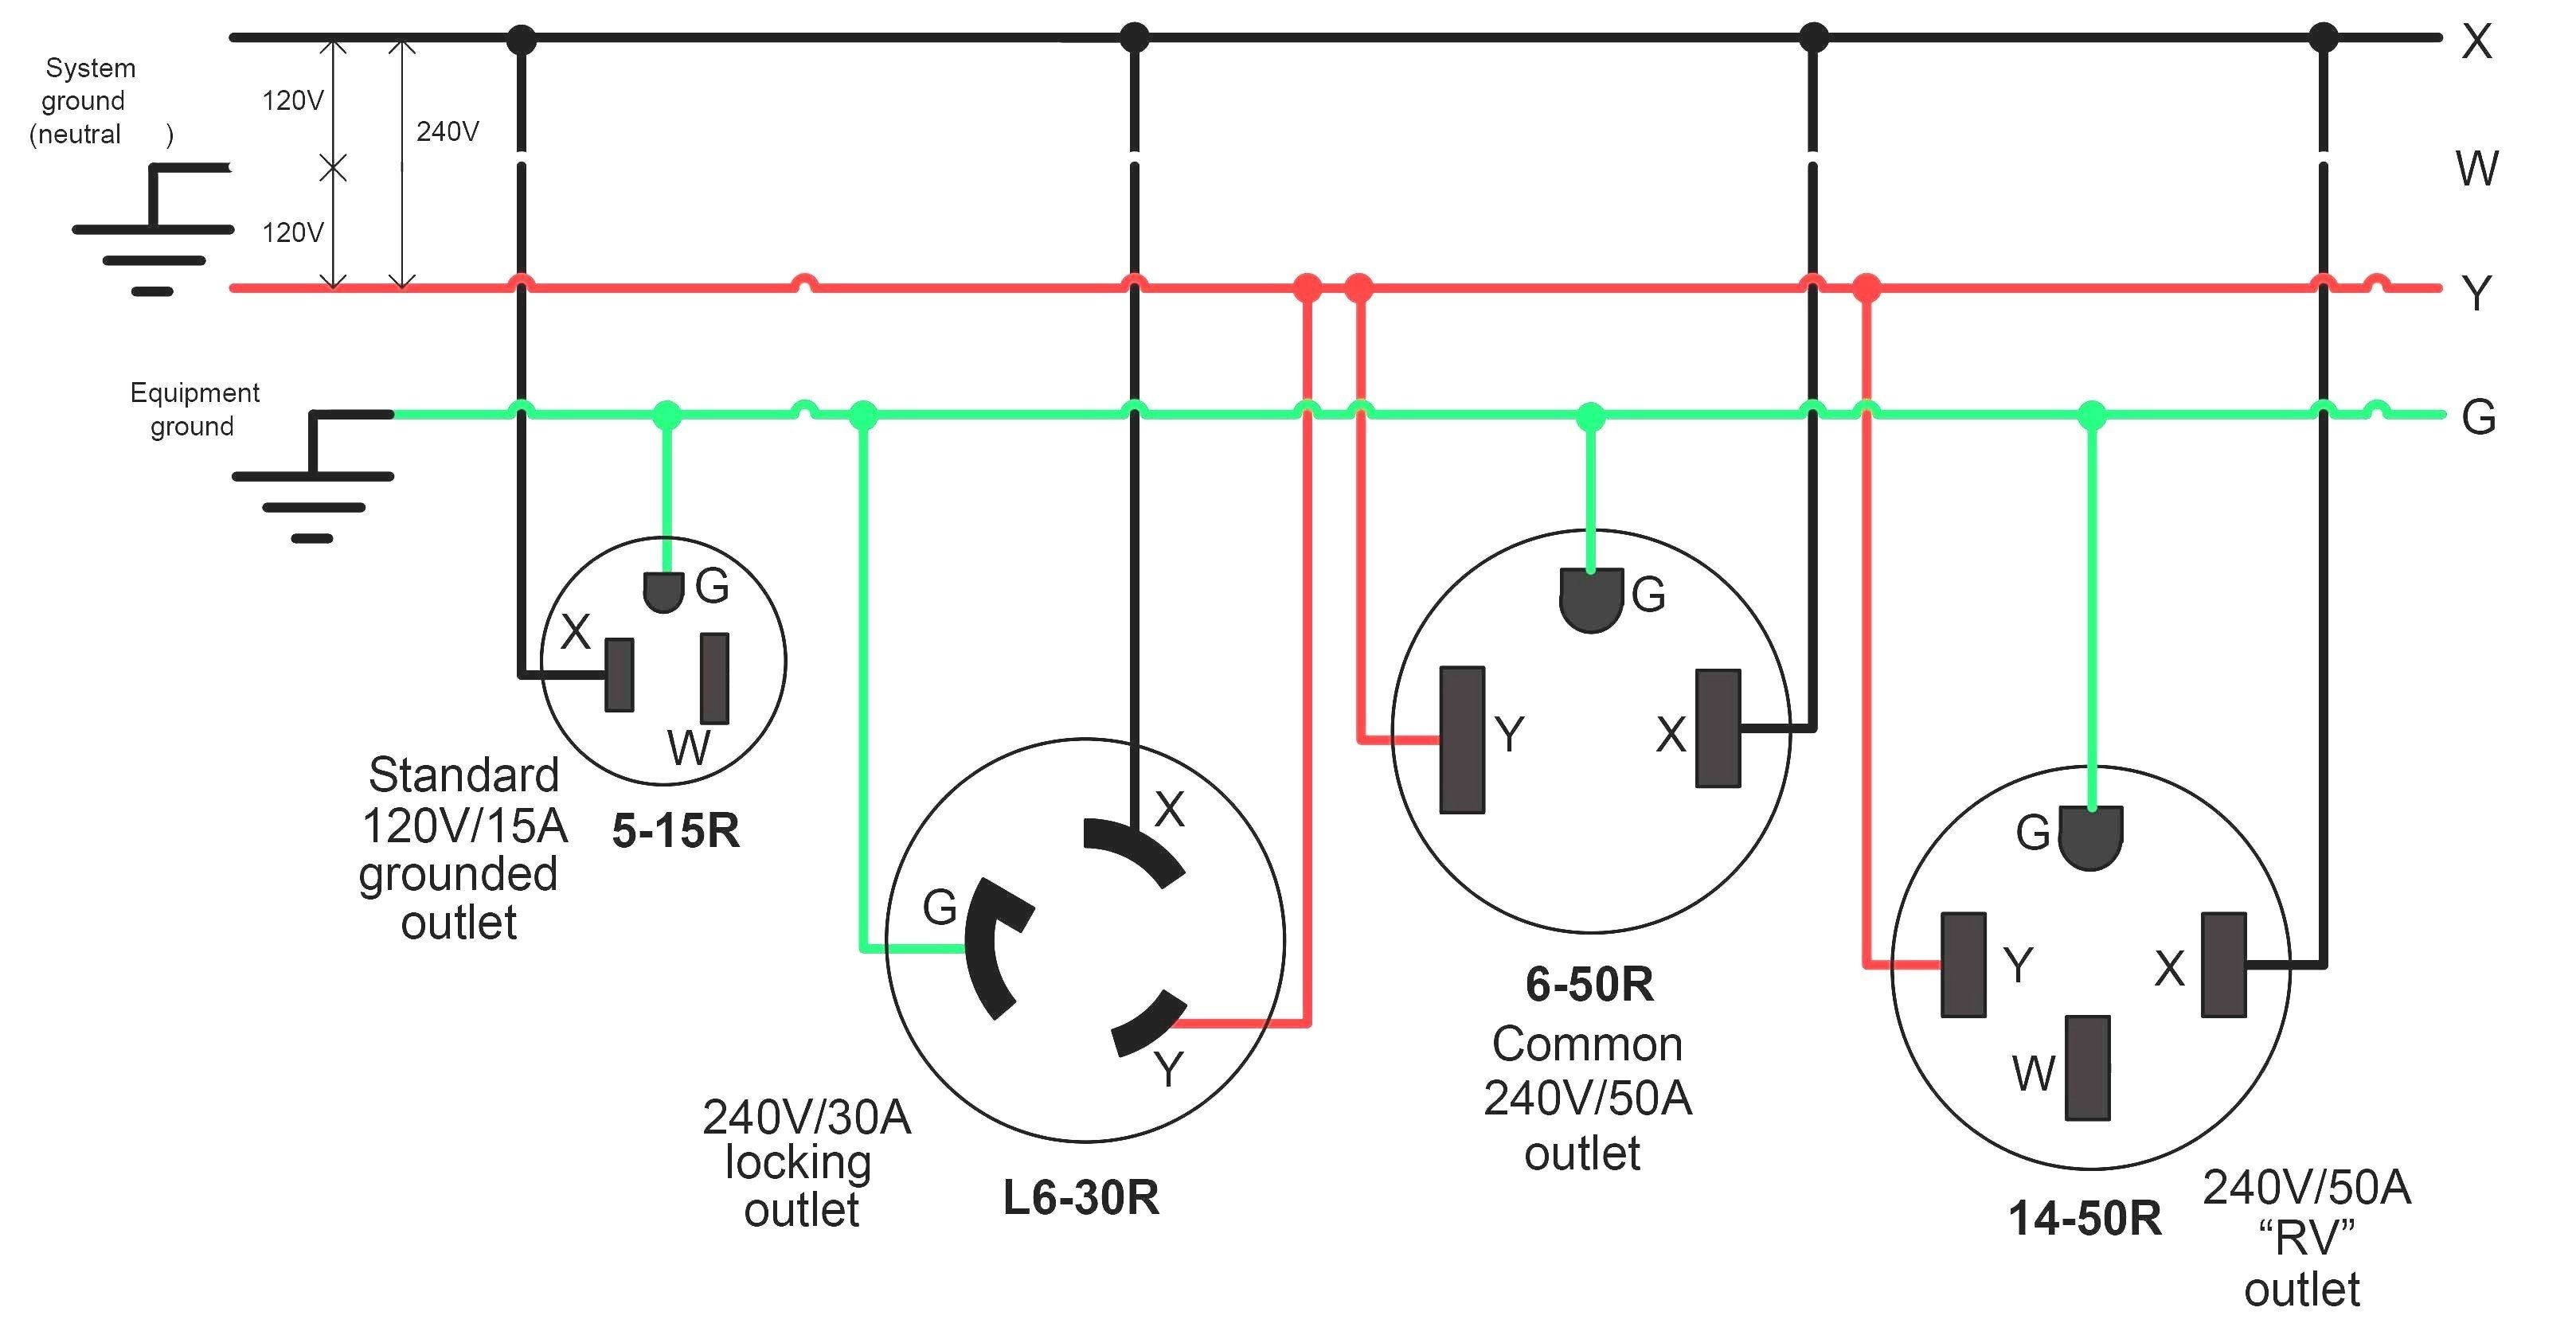 110v wiring colors wiring diagram name 110v yellow plug wiring diagram 110v plug wiring [ 3235 x 1672 Pixel ]